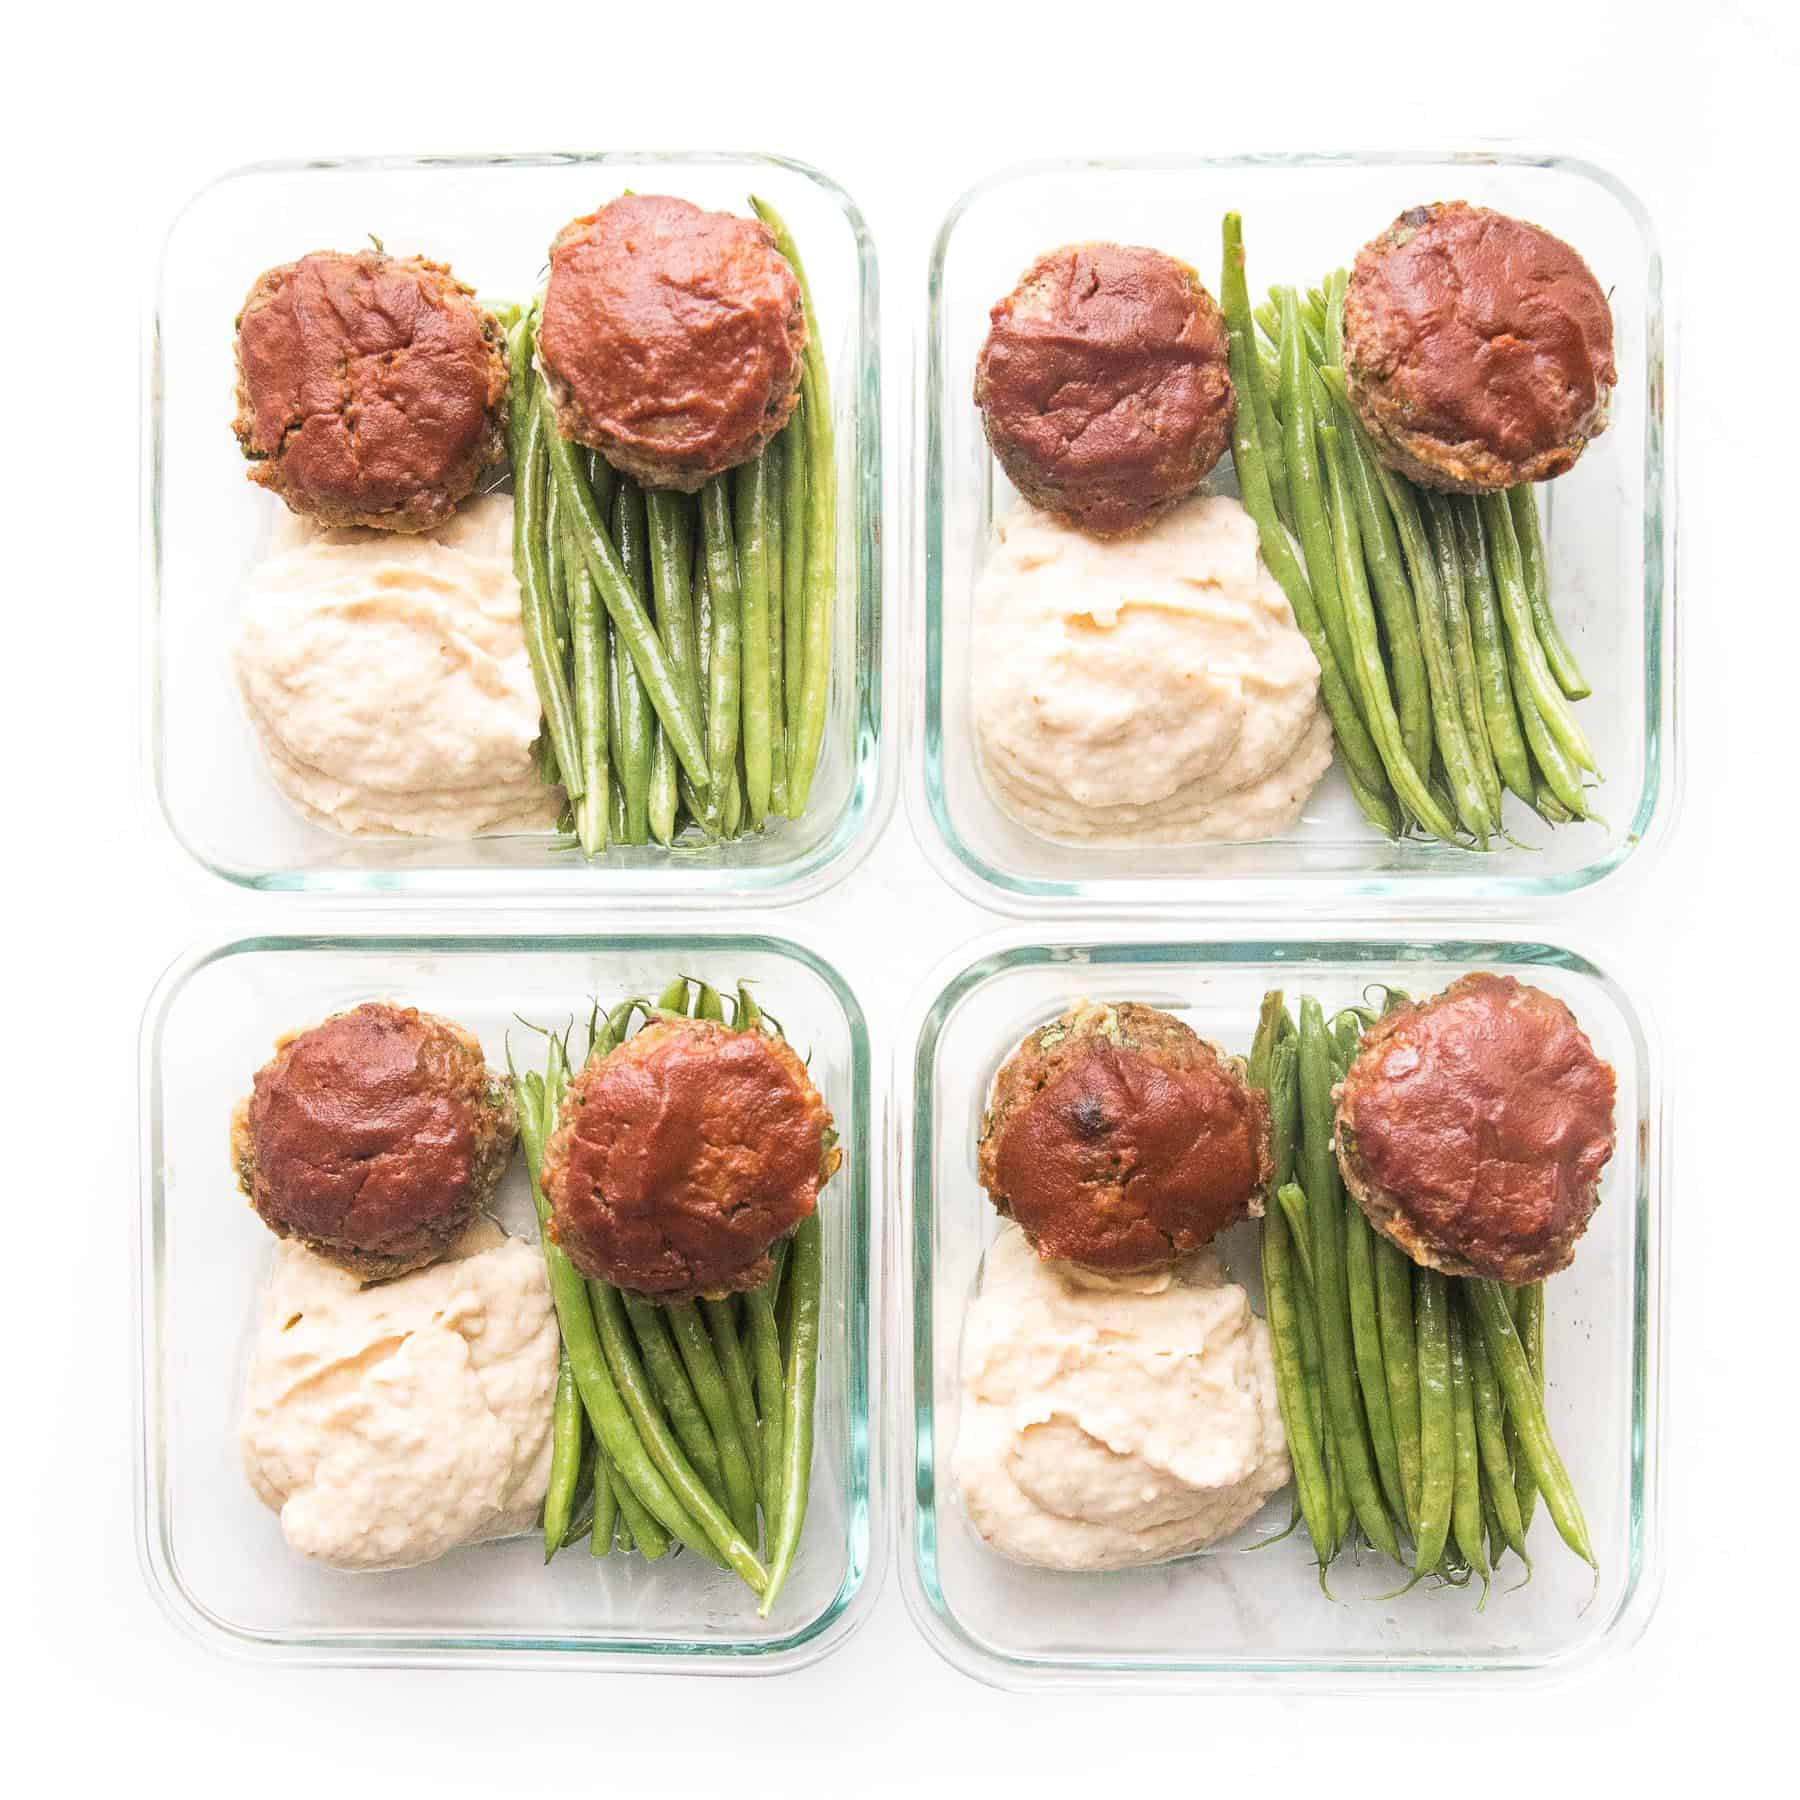 Mini meatloaf muffins topped with ketchup with green beans + mashed cauliflower + green beans in a meal prep container